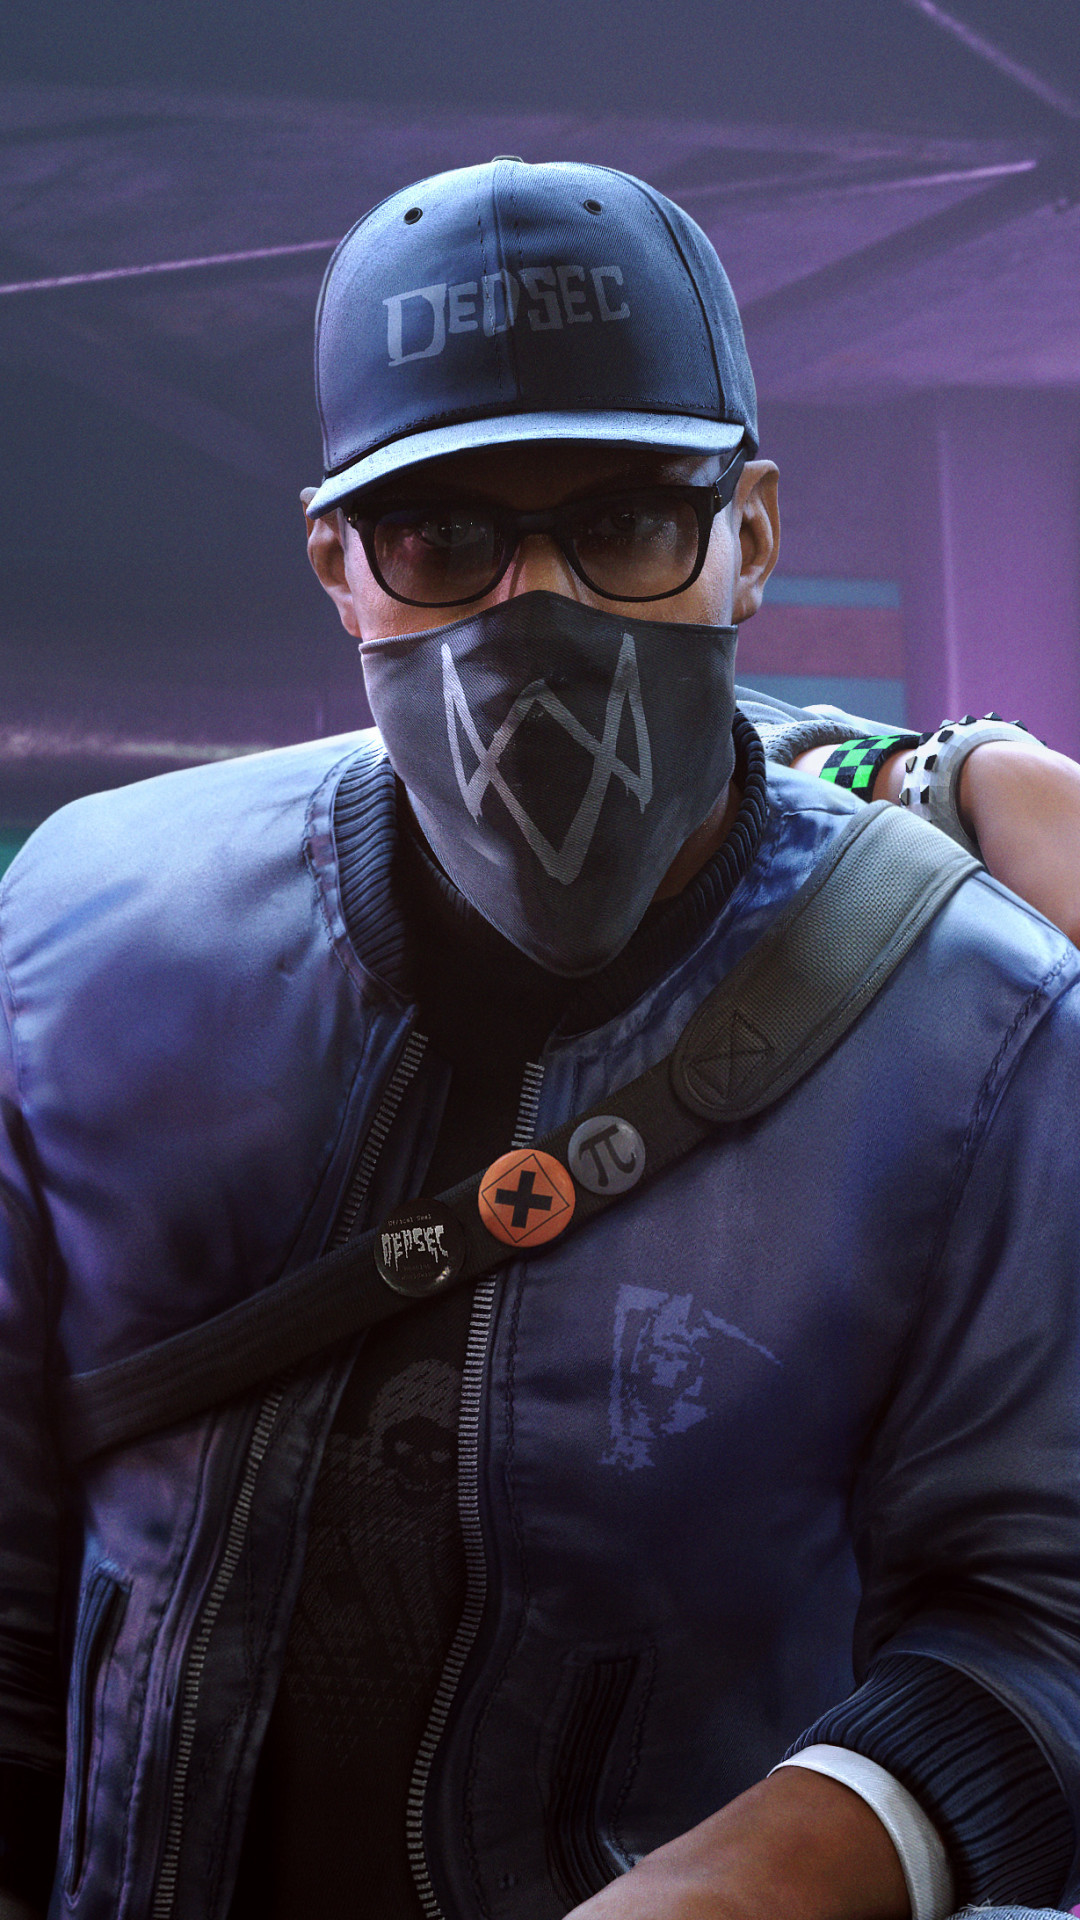 Watch Dogs 2 Wallpapers - والپیپر واچ داگز 2 , HD Wallpaper & Backgrounds